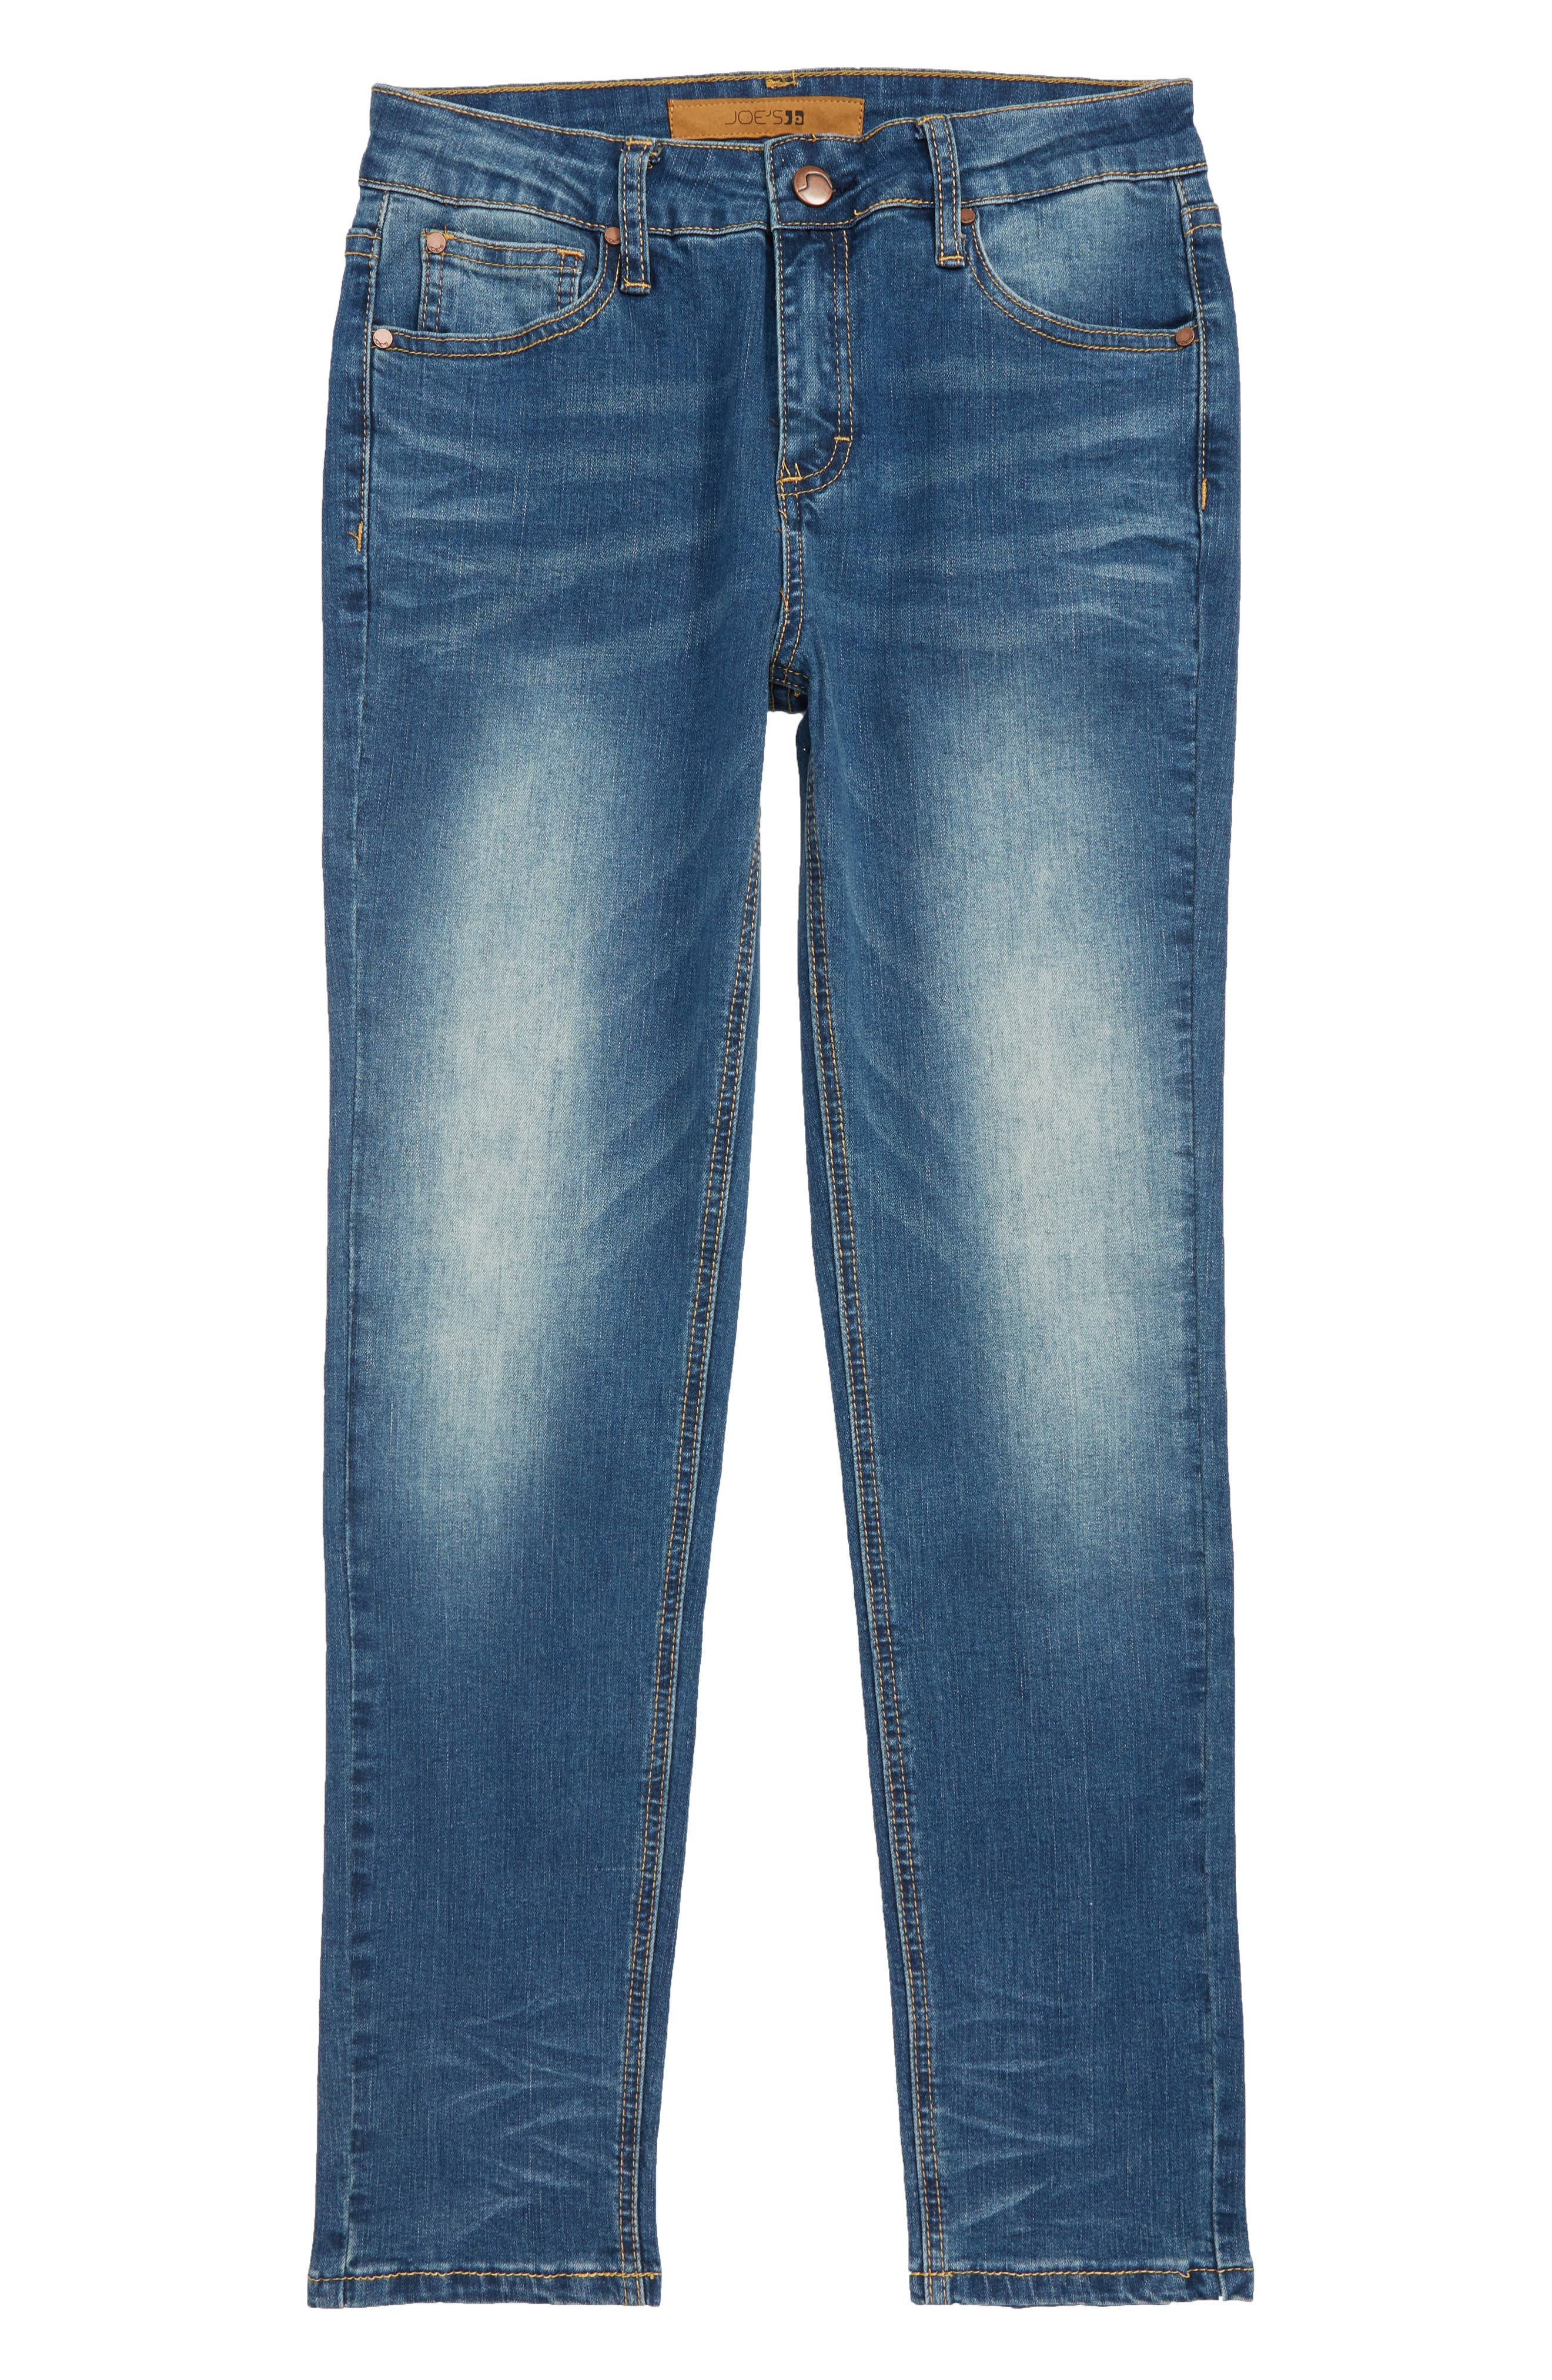 Brixton Straight Leg Stretch Jeans,                         Main,                         color, FOSSIL